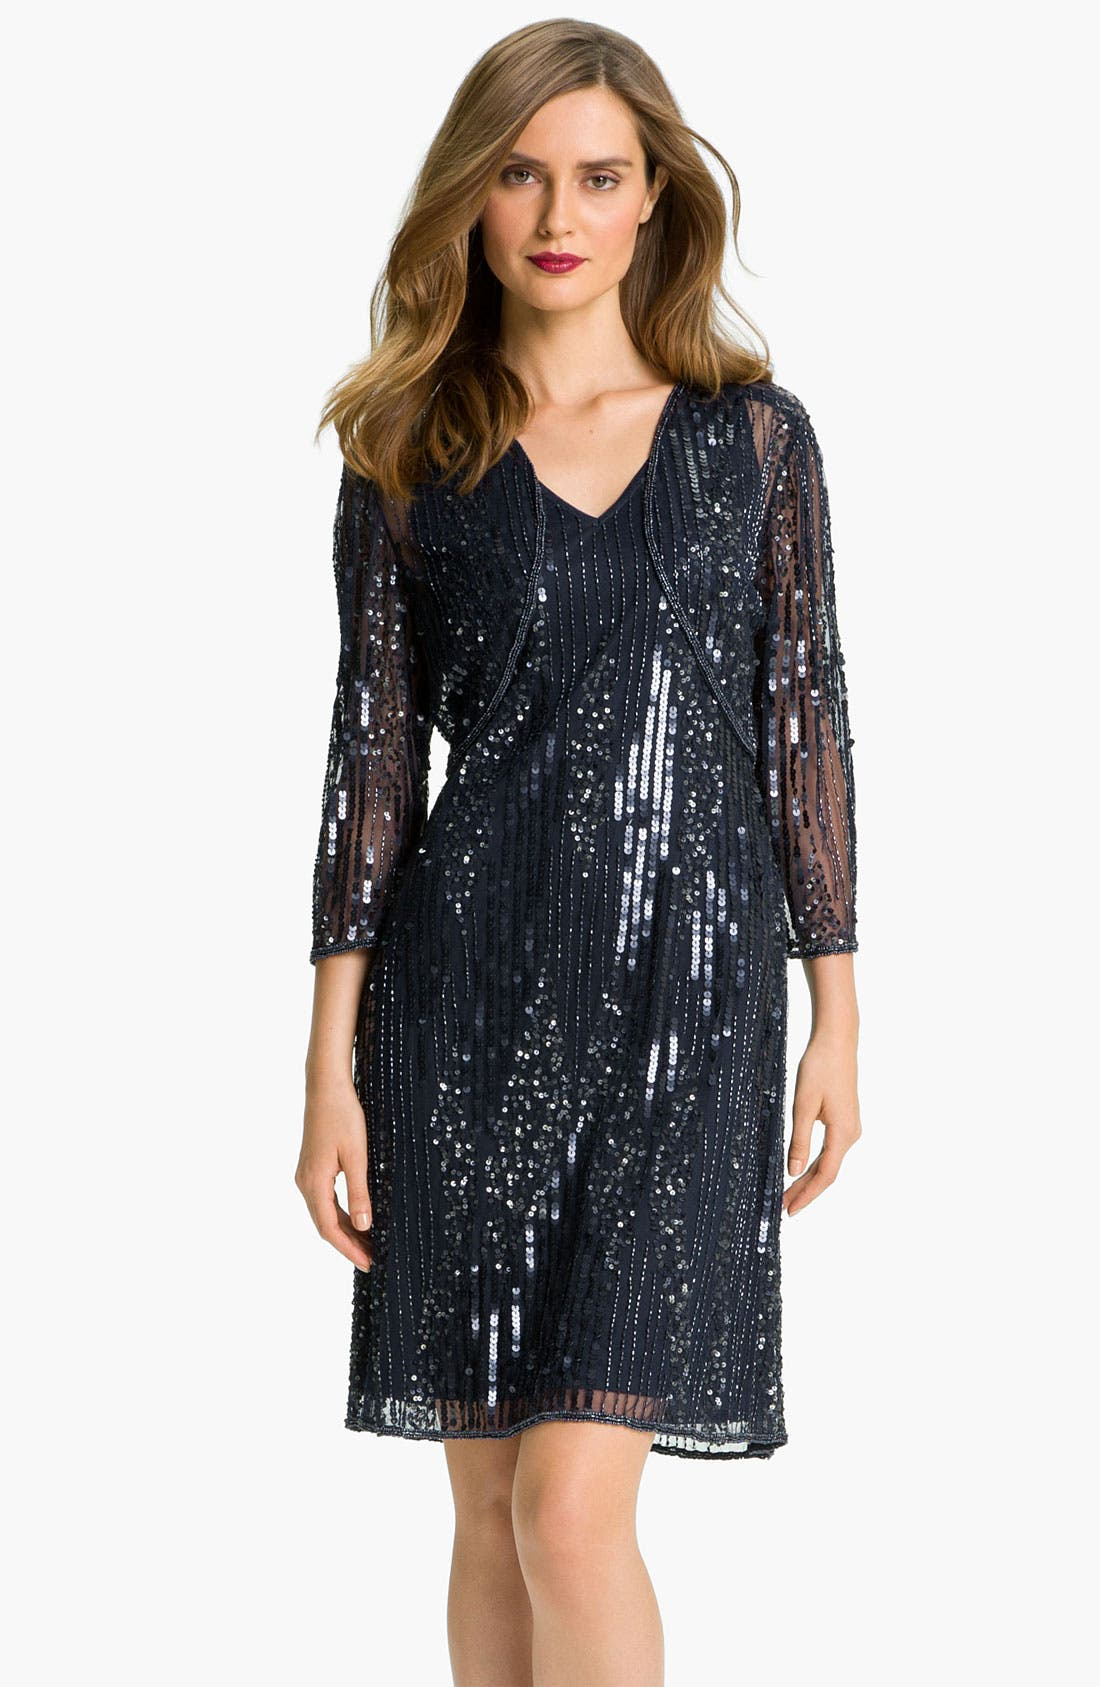 Alternate Image 1 Selected - Patra Embellished Double V-Neck Mesh Dress & Sheer Bolero